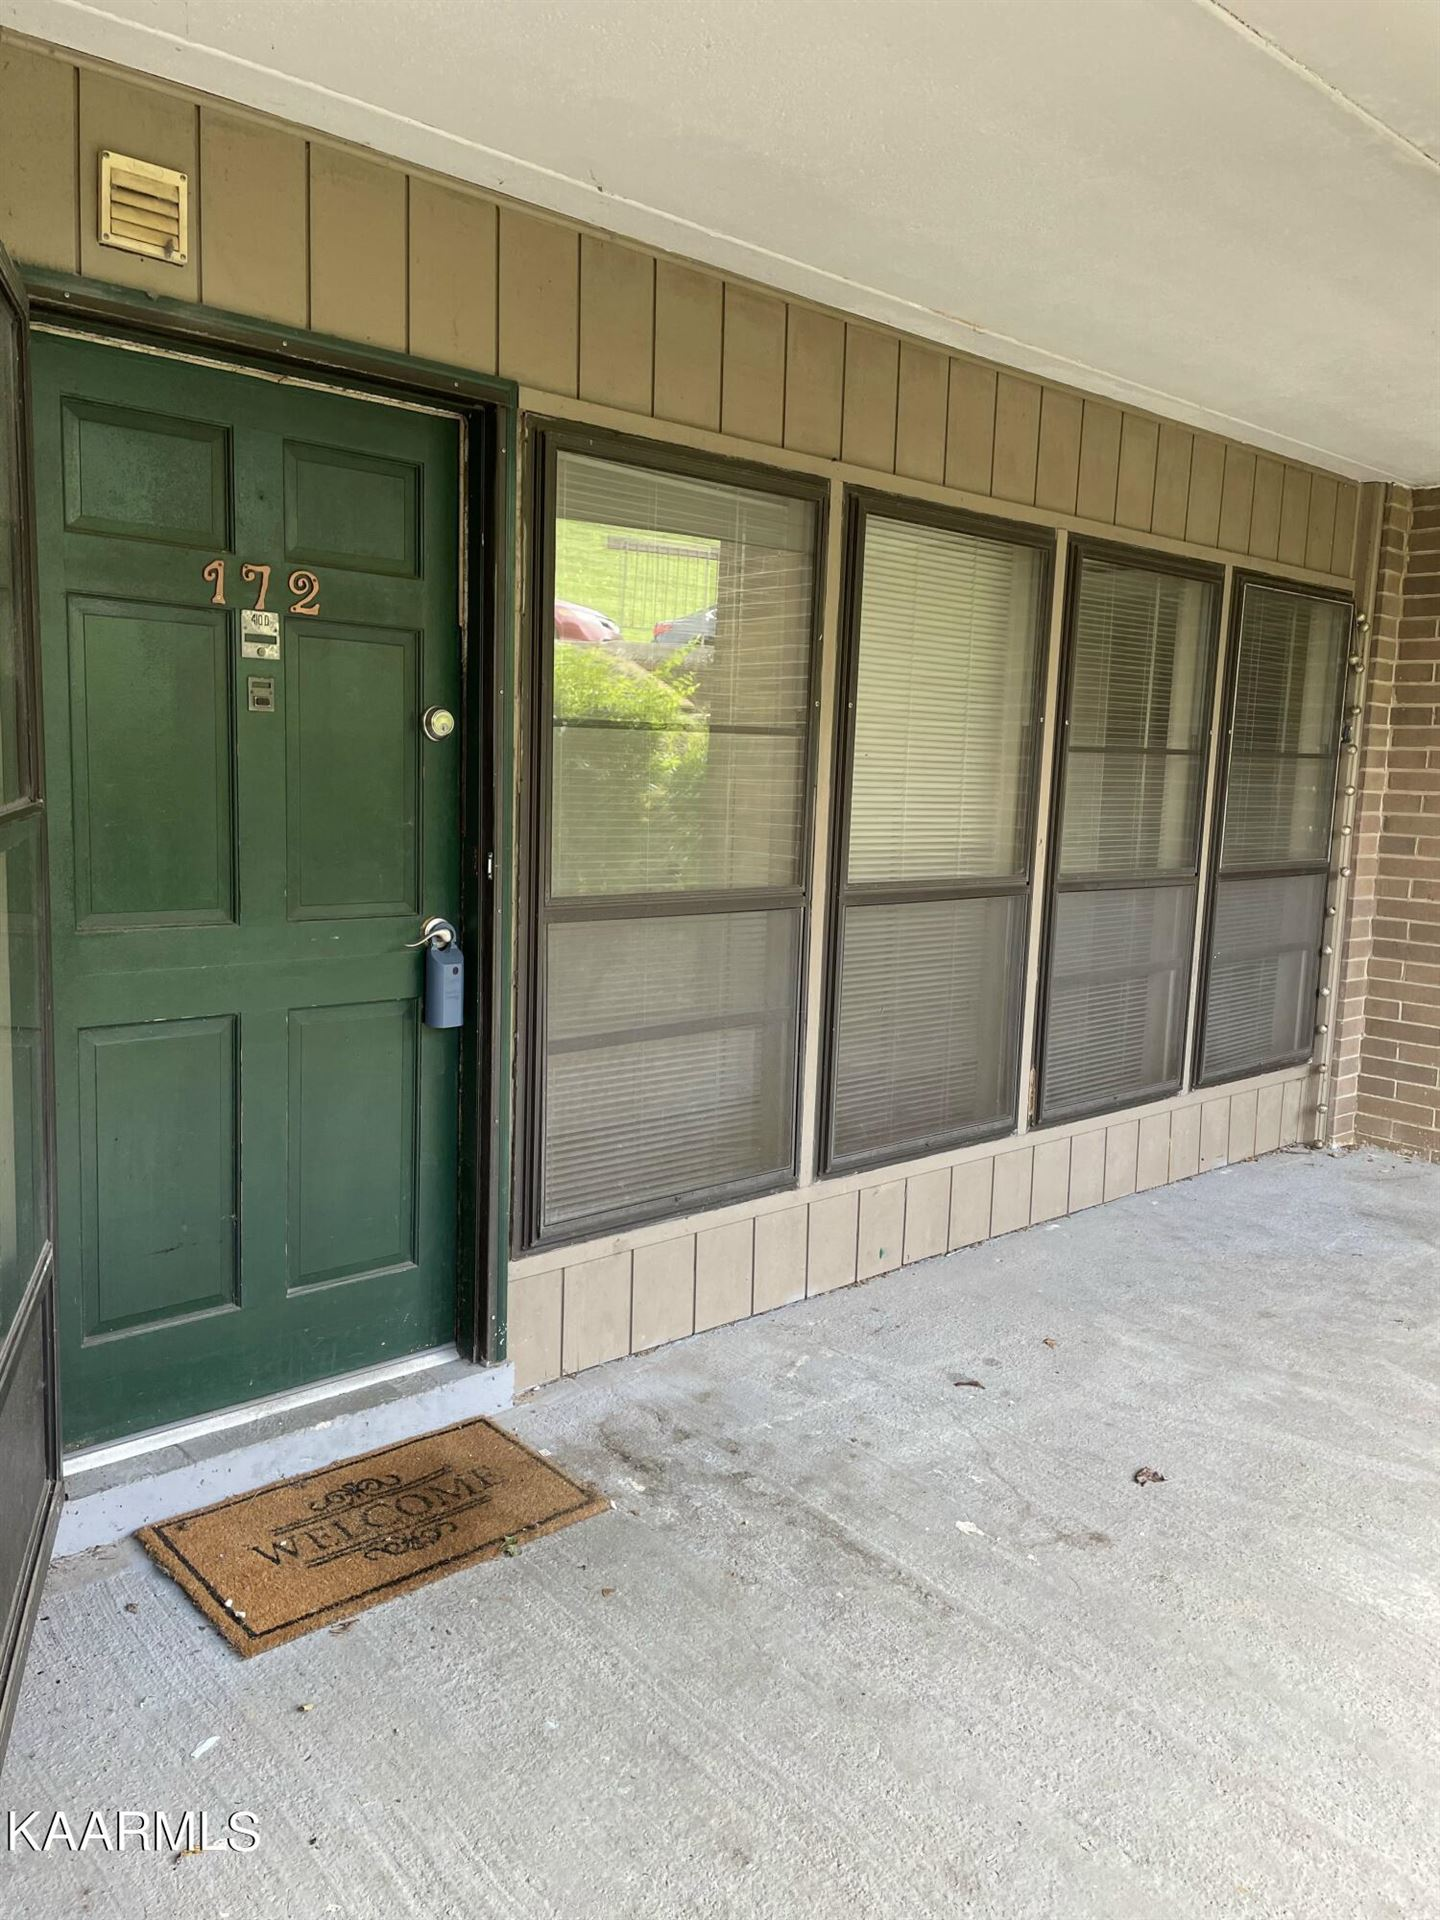 Photo of 506 Berlin Drive #172, Knoxville, TN 37923 (MLS # 1171794)